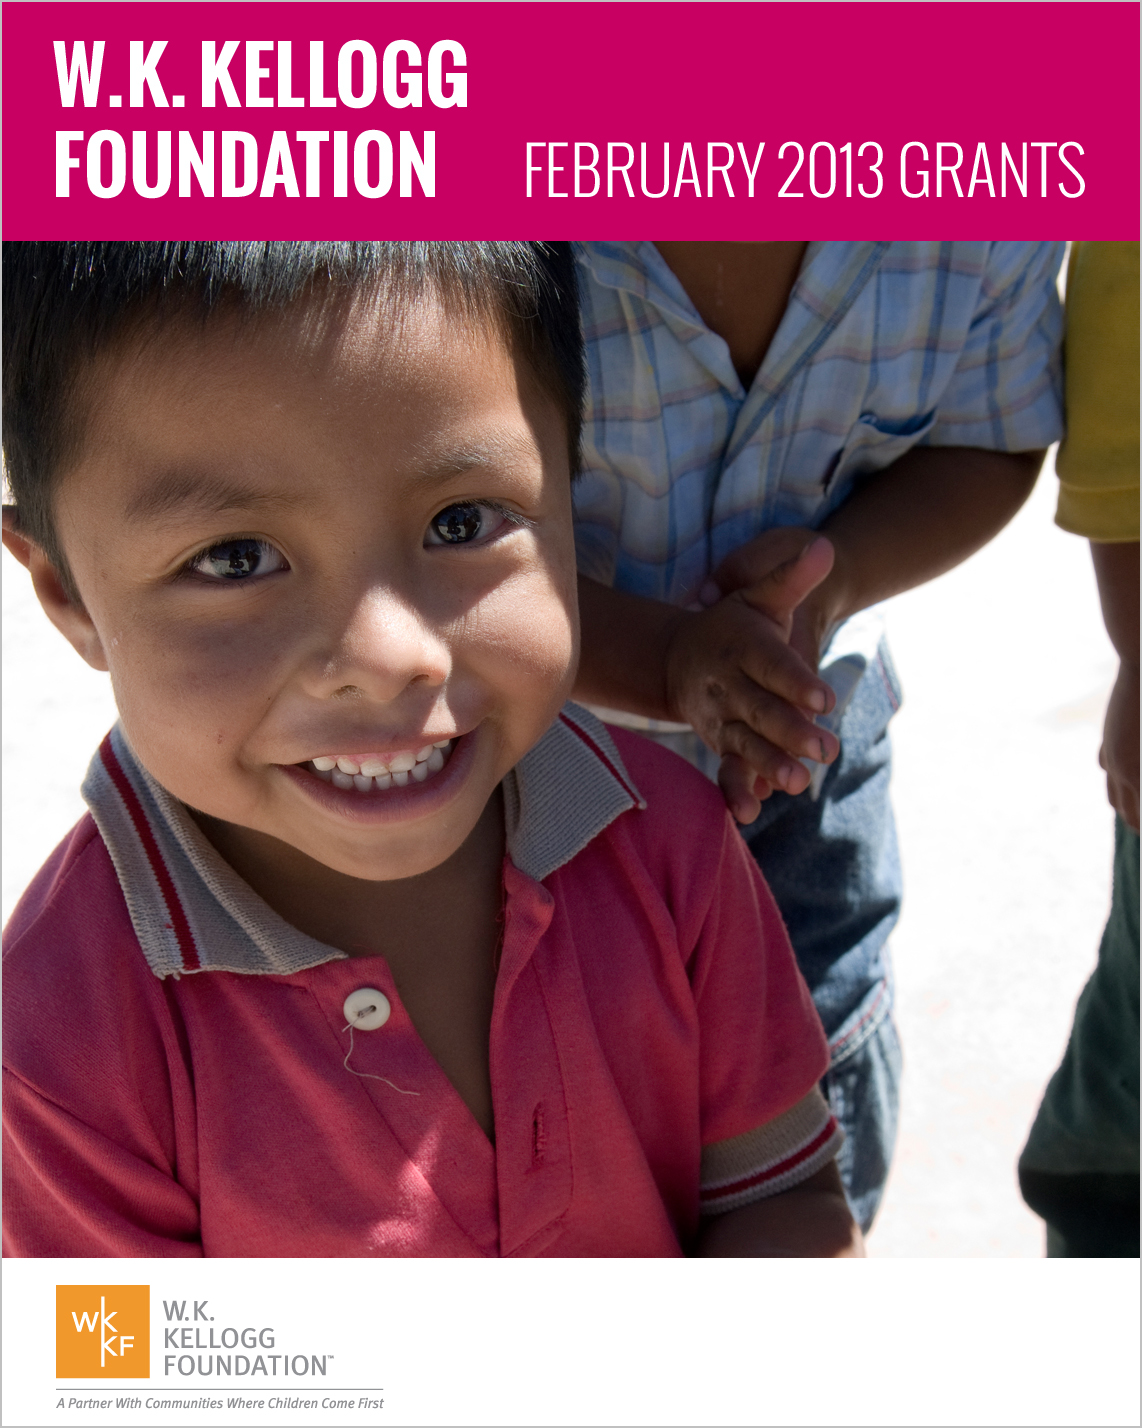 W.K. Kellogg Foundation Grants - February 2013